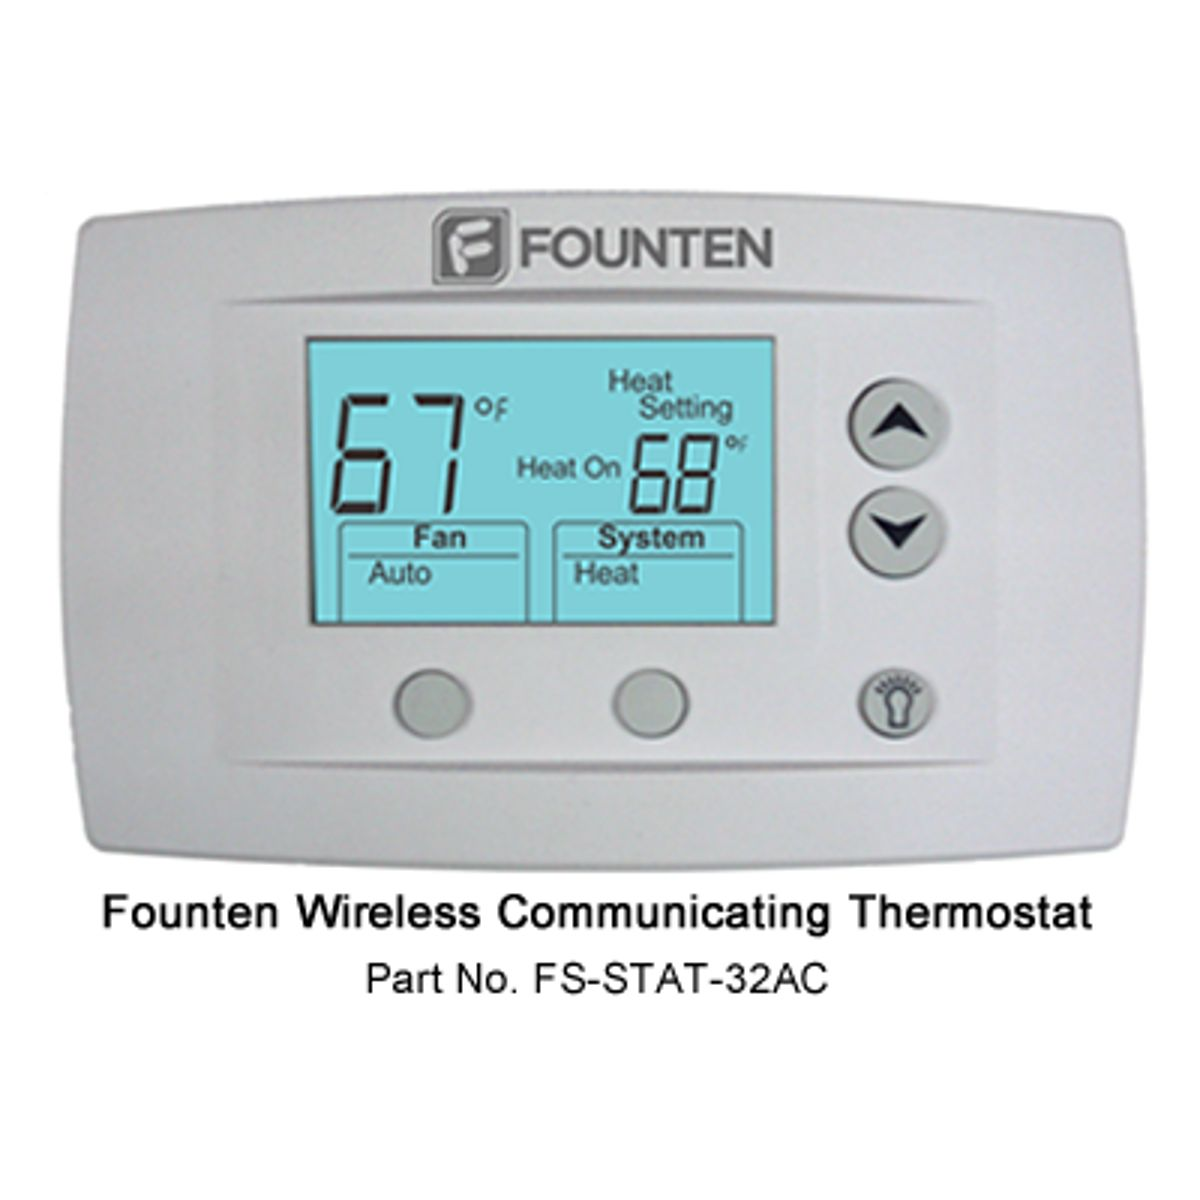 Founten FS-STAT-32AC Hard Wired Programmable Thermostat | Cool ...